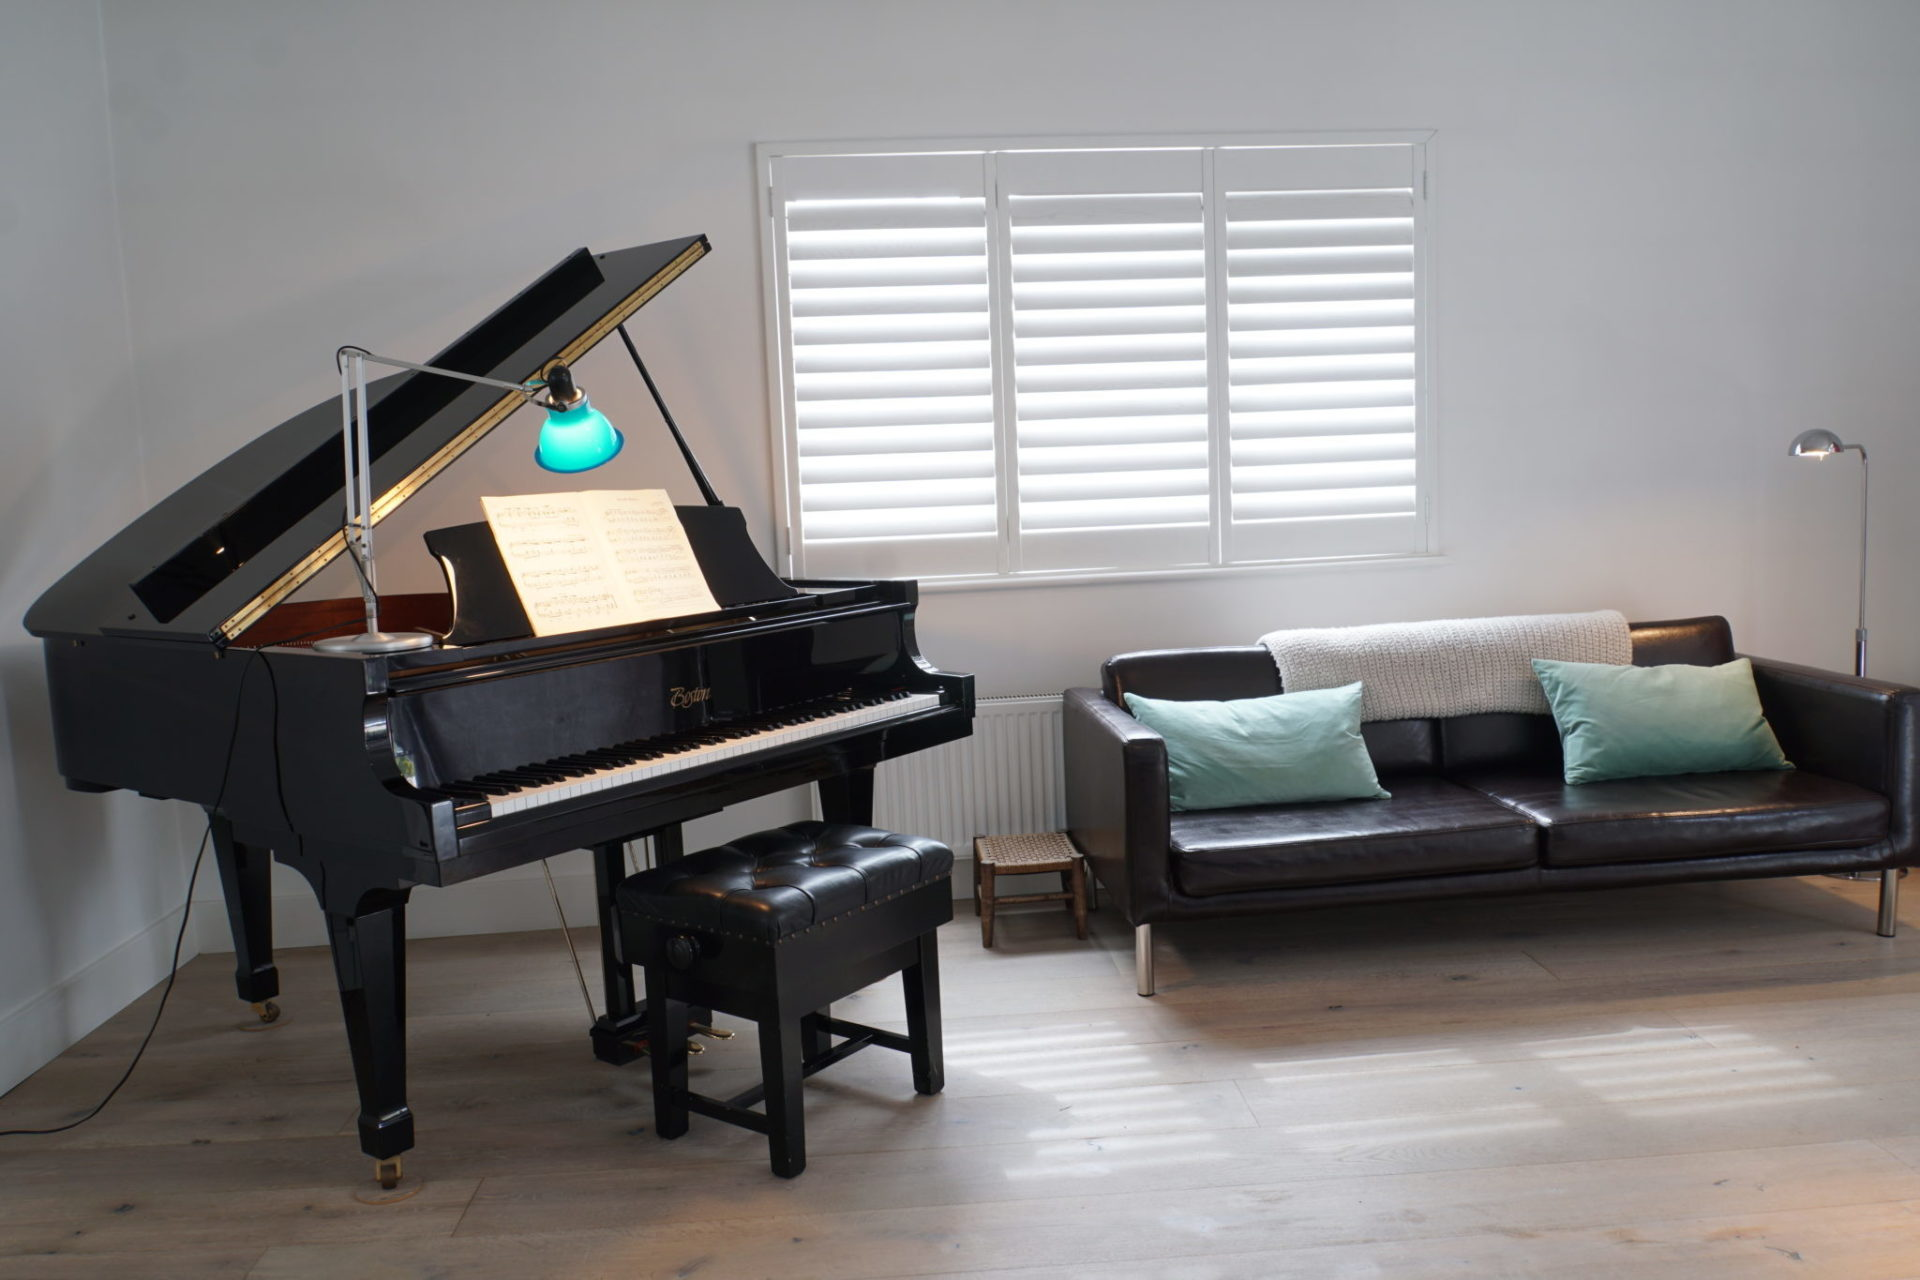 Holiday Cottage with Boston Baby Grand Piano